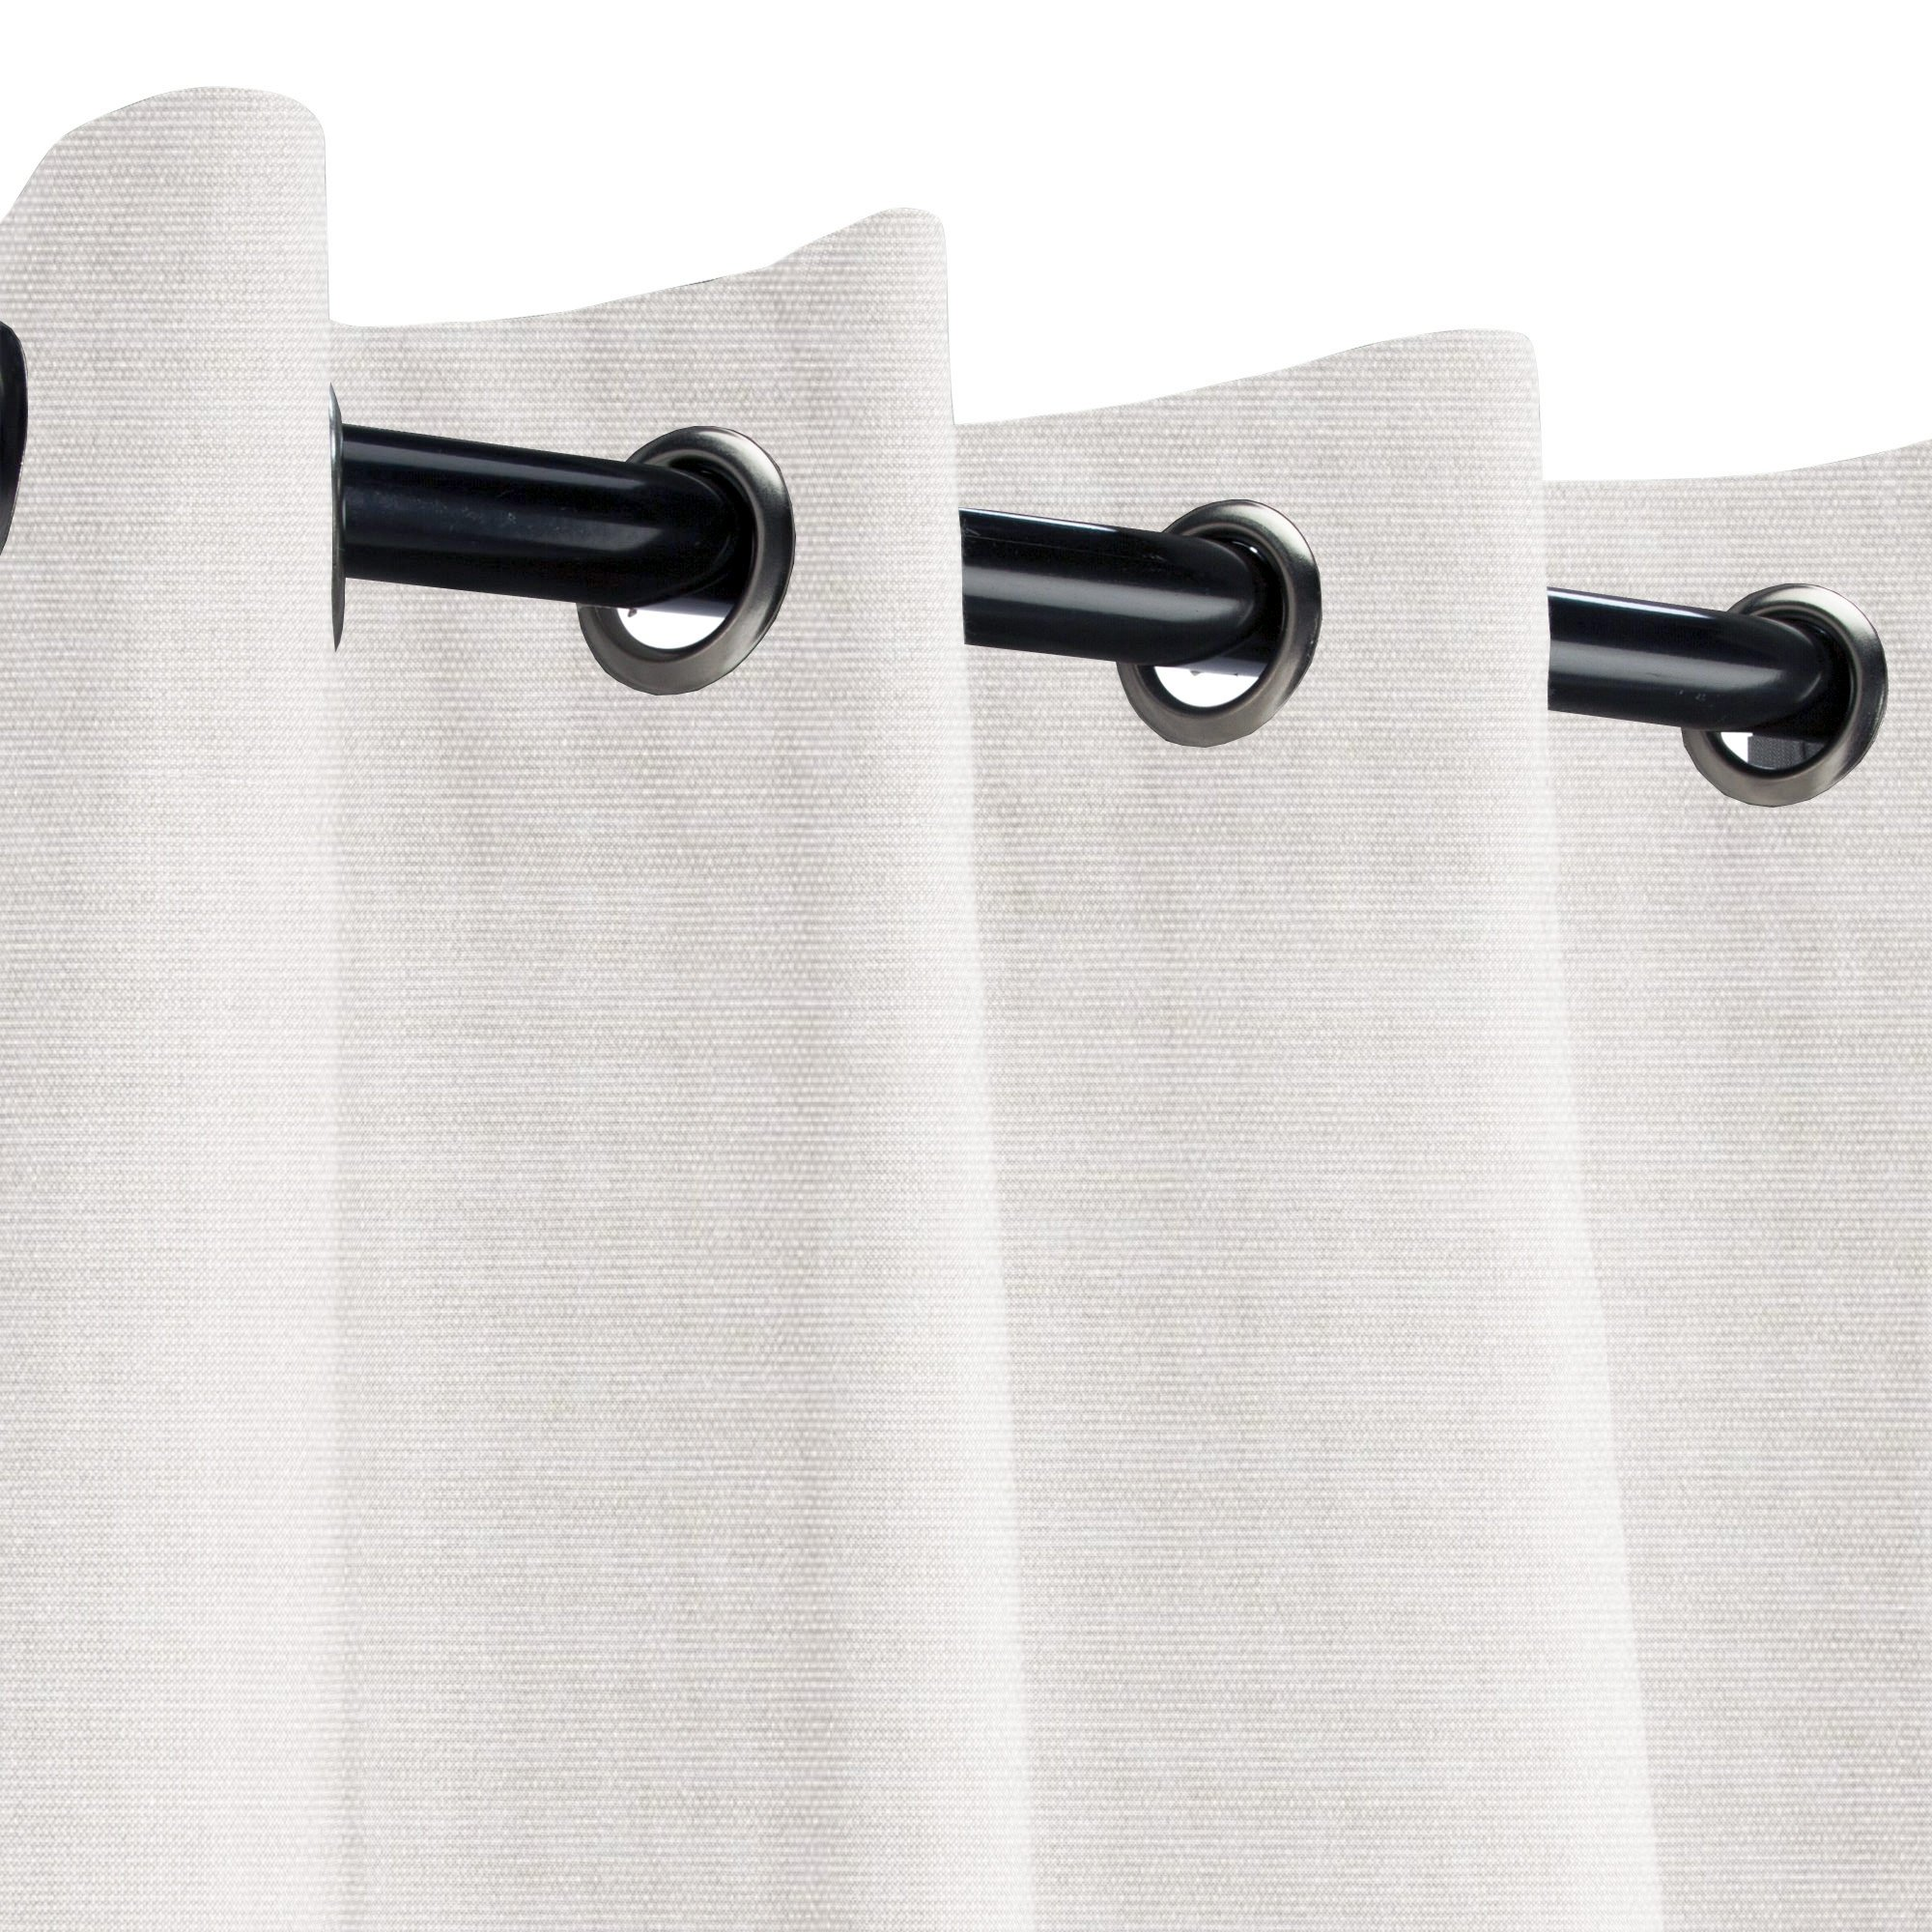 Sunbrella Linen Canvas Outdoor Curtain with Nickel Grommets 50 in. Wide x 108 in. Long